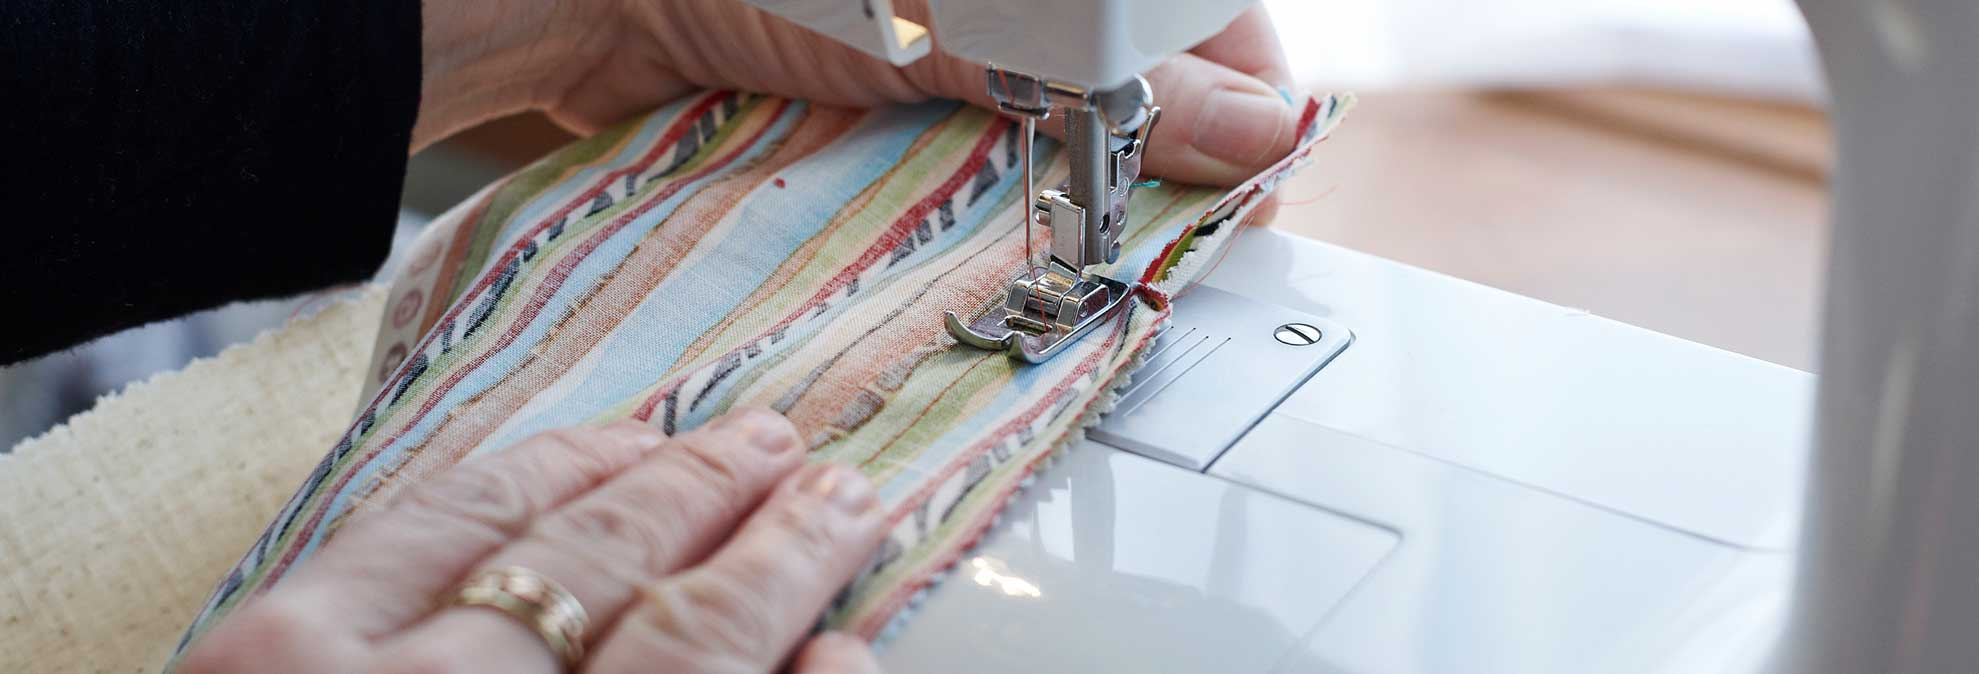 Best Sewing Machine Buying Guide Consumer Reports Free Kenmore Treading Diagrams